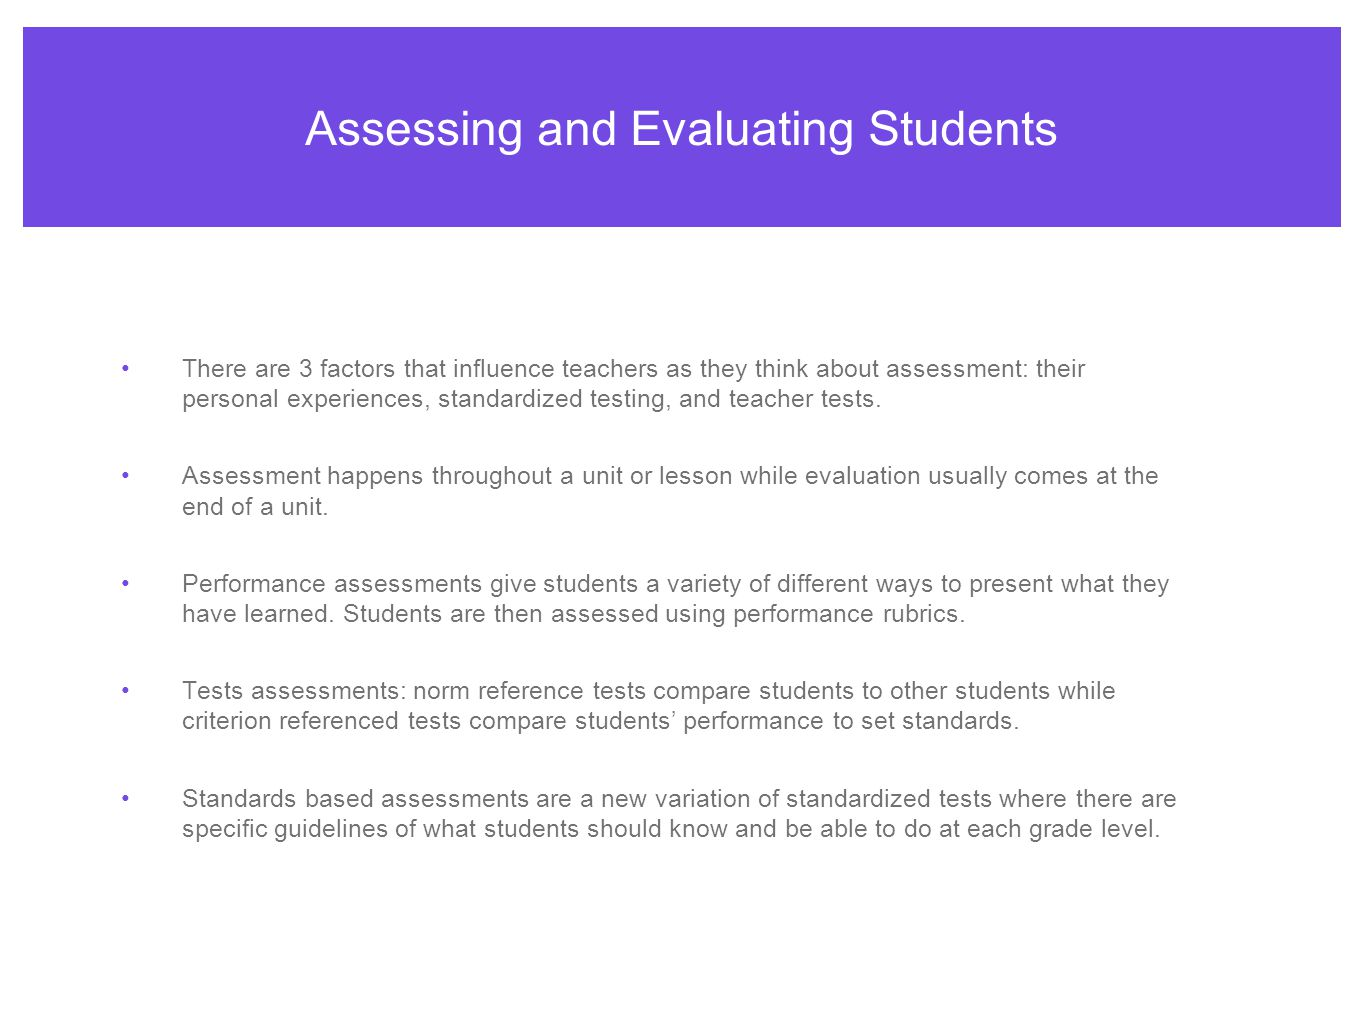 Assessing and Evaluating Students There are 3 factors that influence teachers as they think about assessment: their personal experiences, standardized testing, and teacher tests.